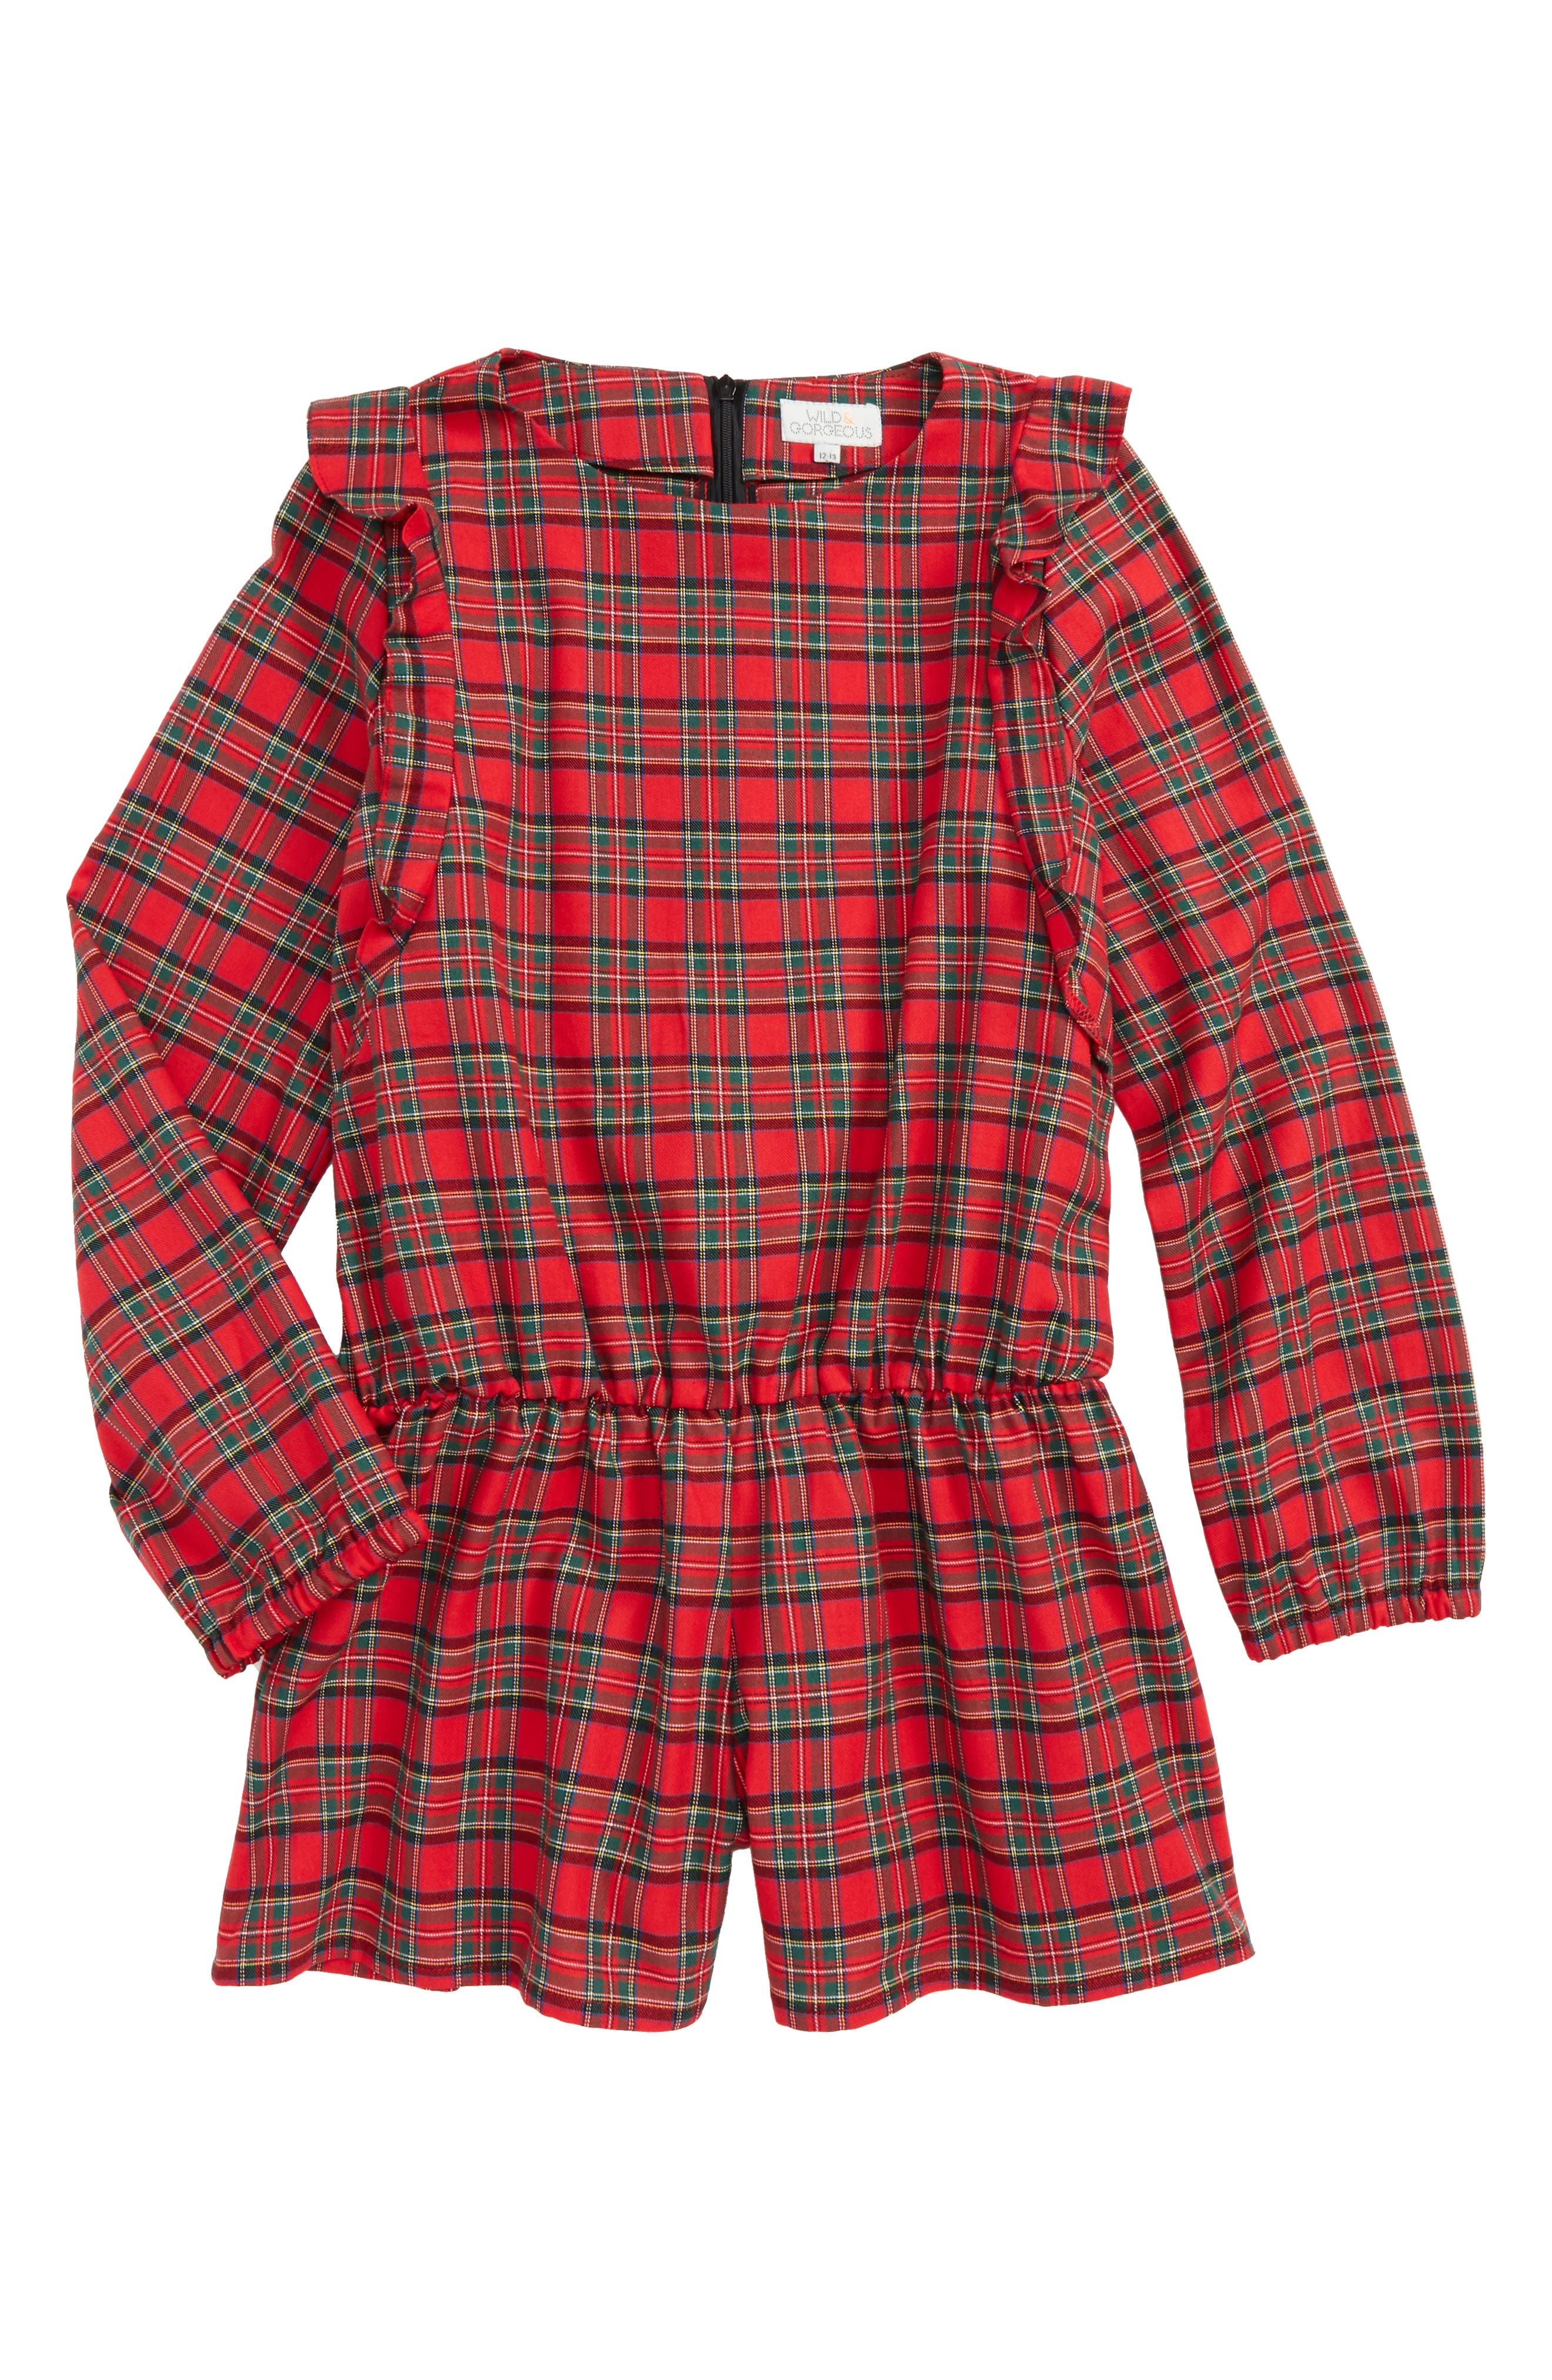 Main Image - Wild & Gorgeous Pam Plaid Romper (Little Girls & Big Girls)